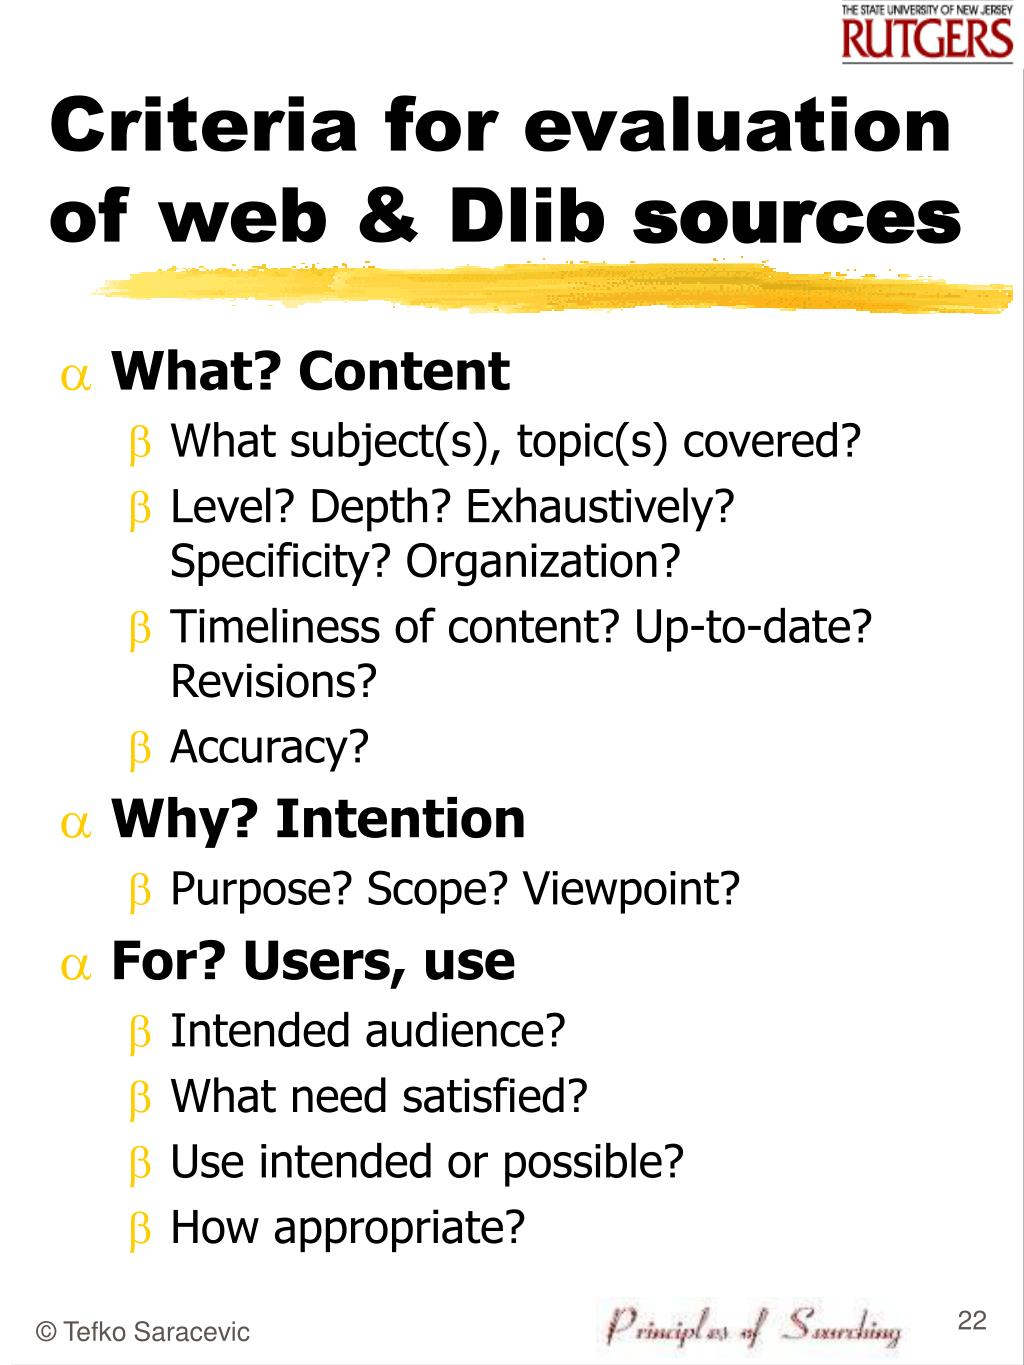 Criteria for evaluation of web & Dlib